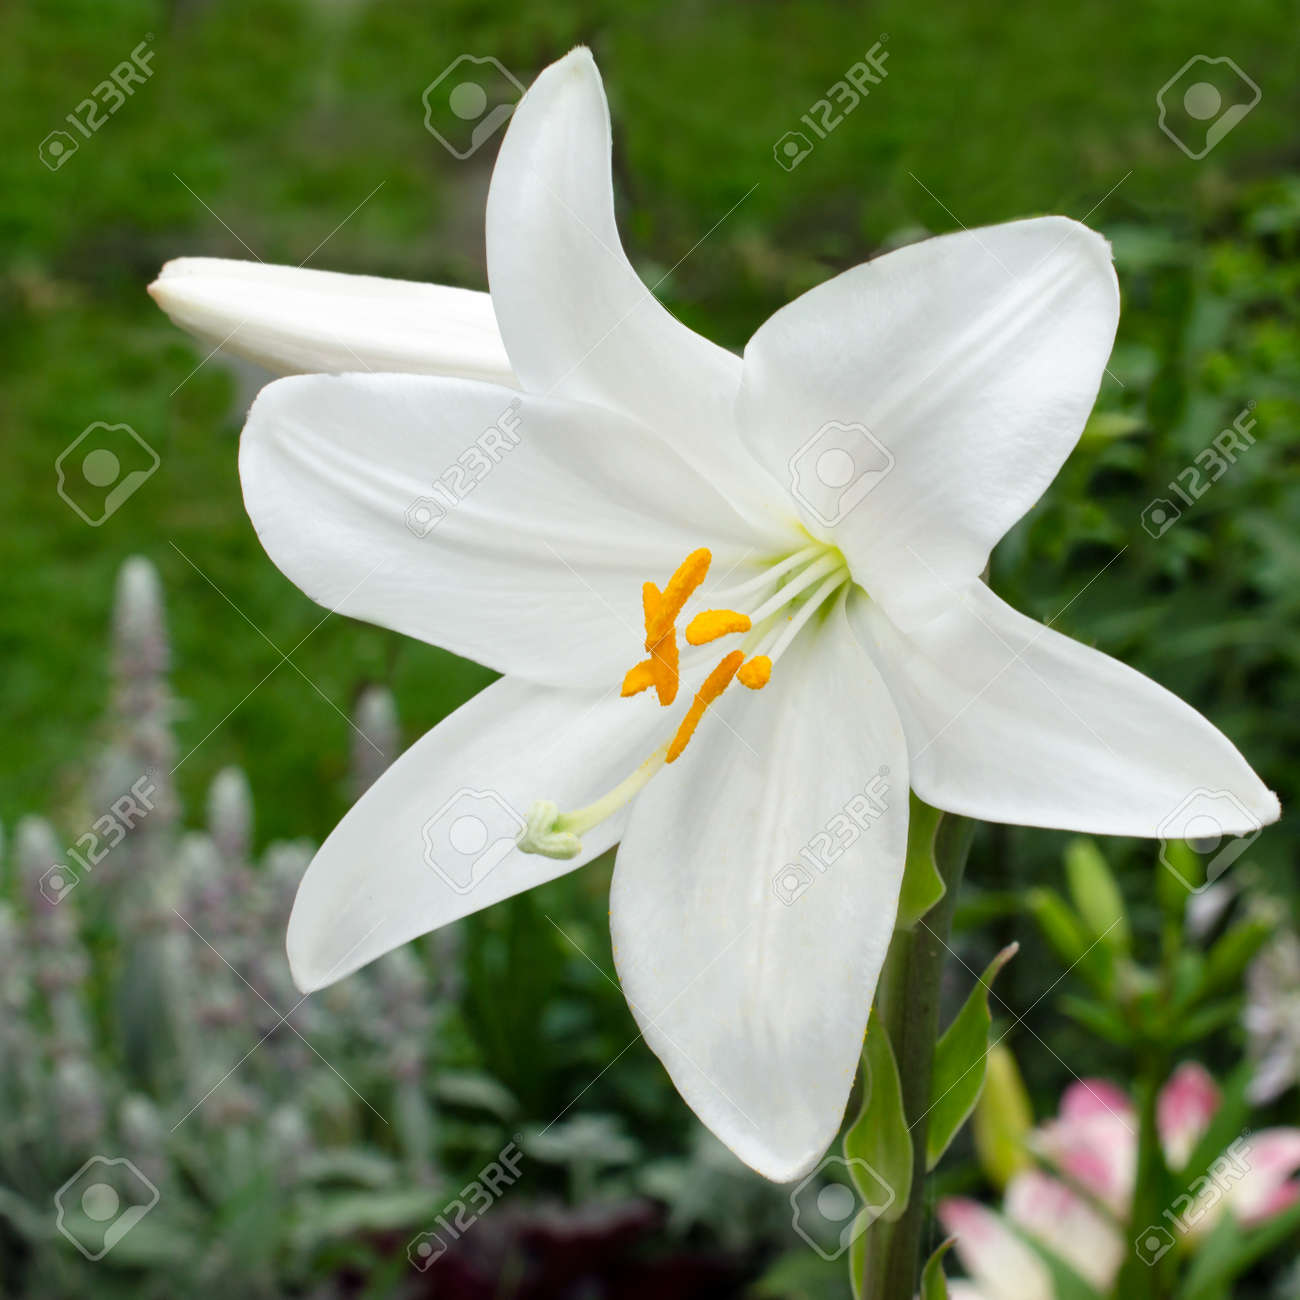 White Lily Varieties Flowers In The Garden Stock Photo Picture